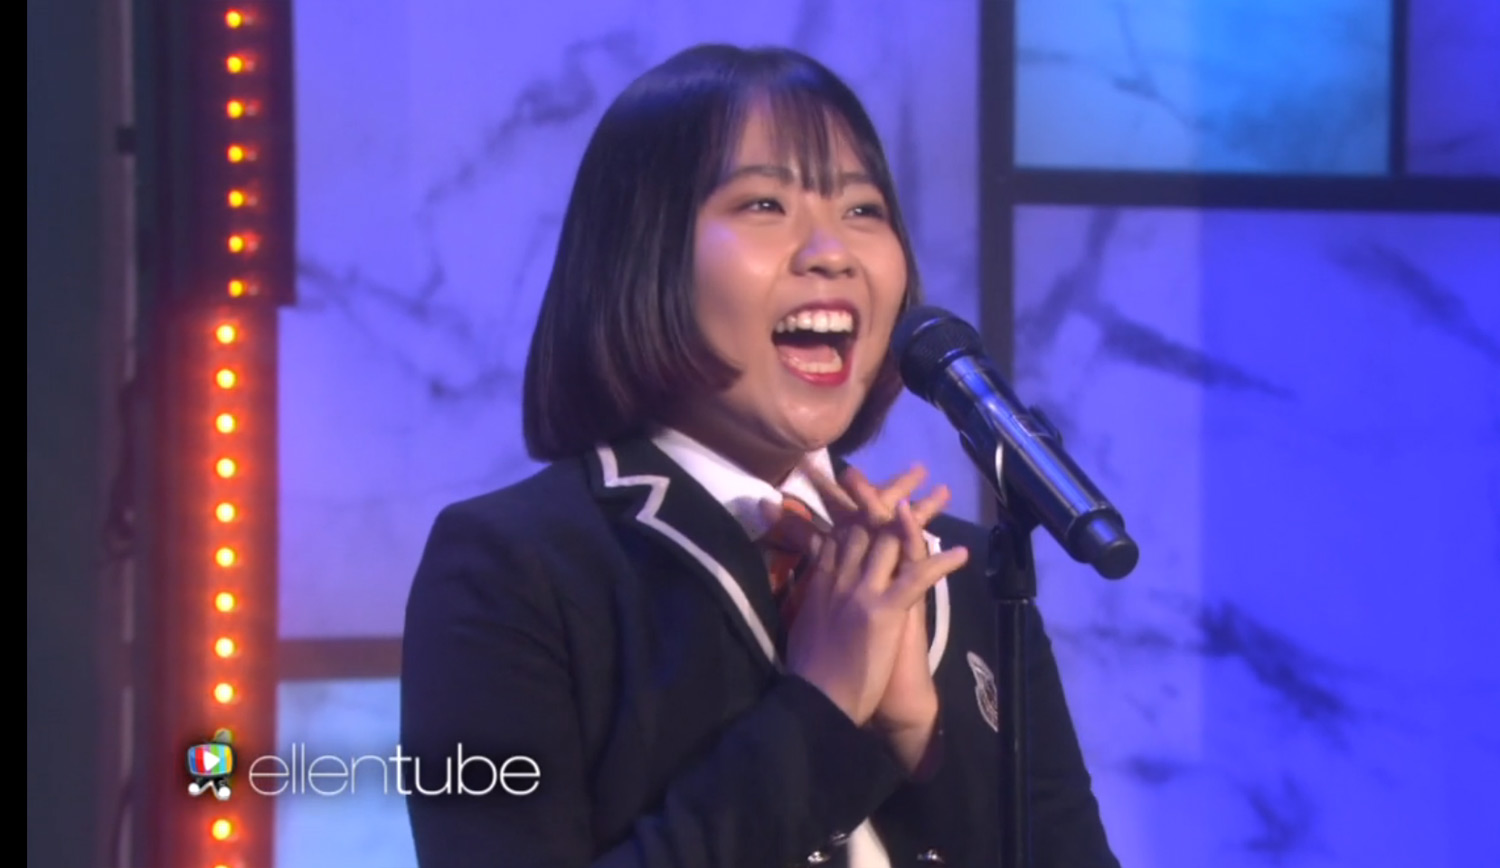 Lydia Lee brand new Ariana Grande cover featured on Ellen Tube